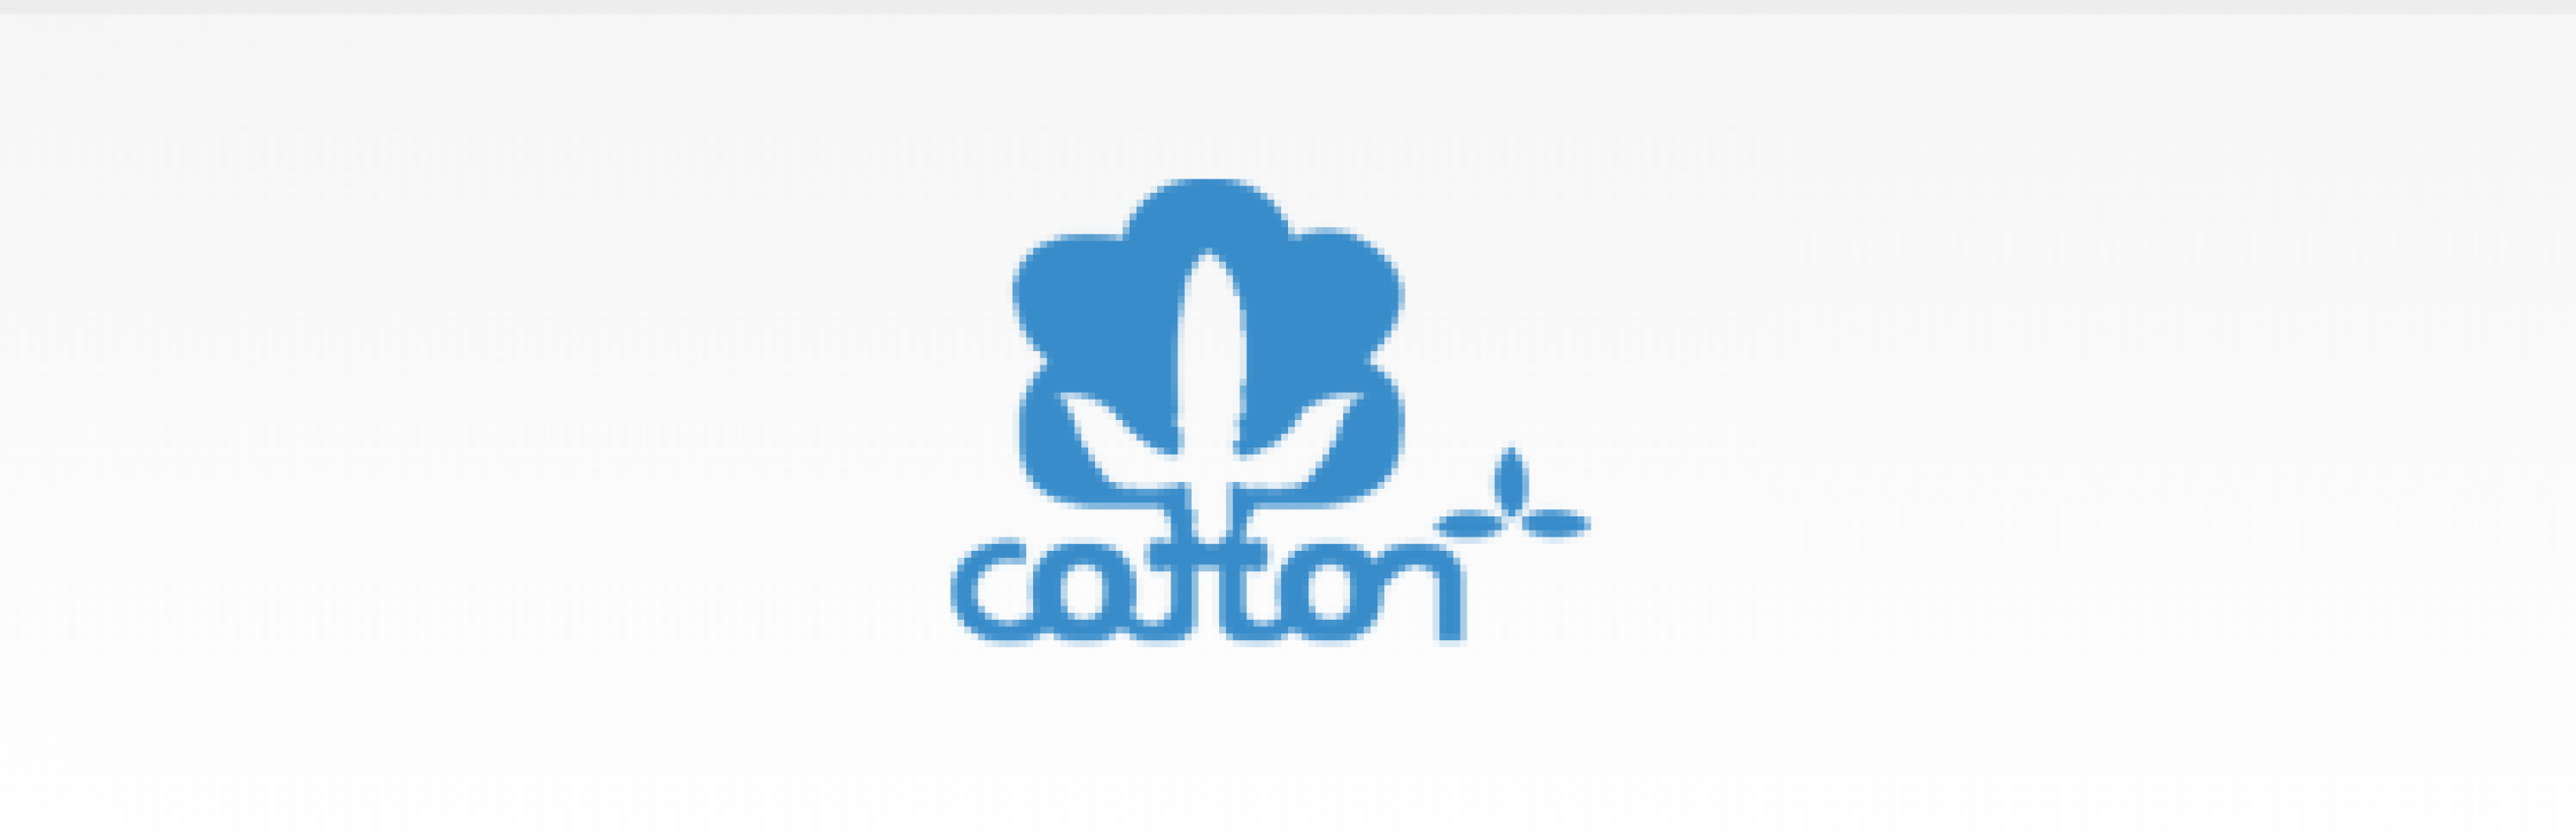 PACIFIC COTTON LTD